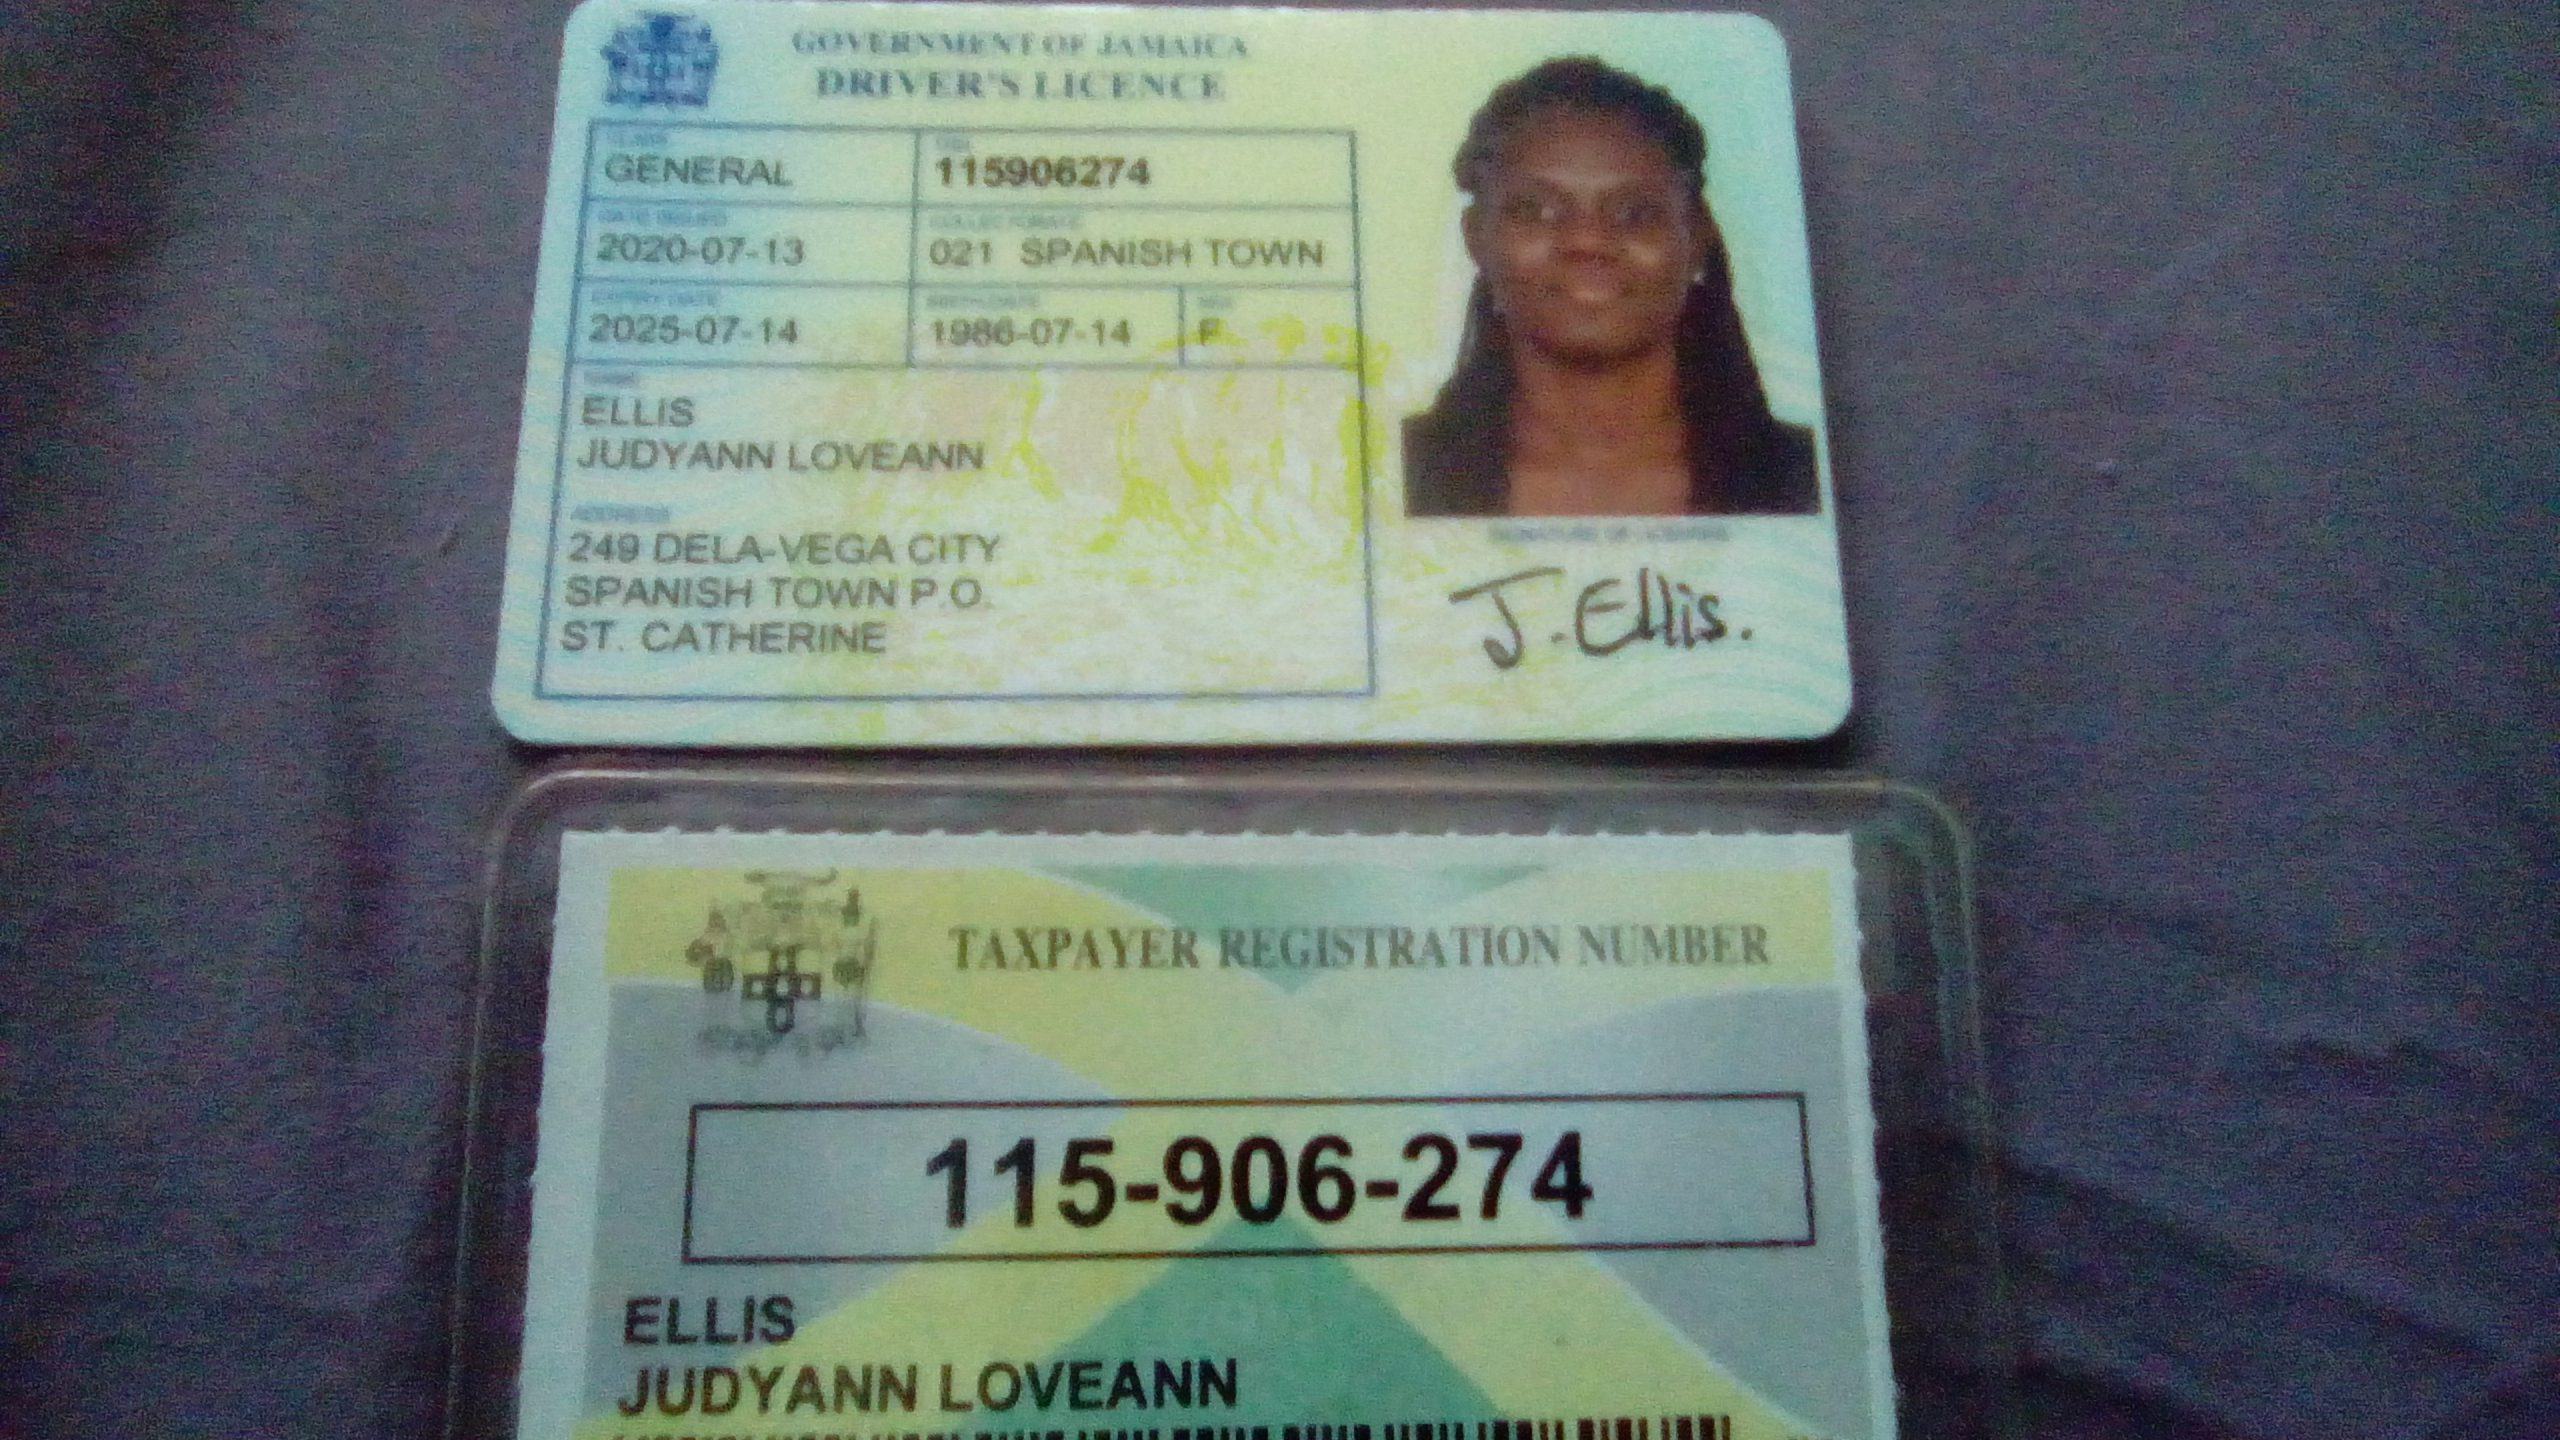 Driver's licence and TRN